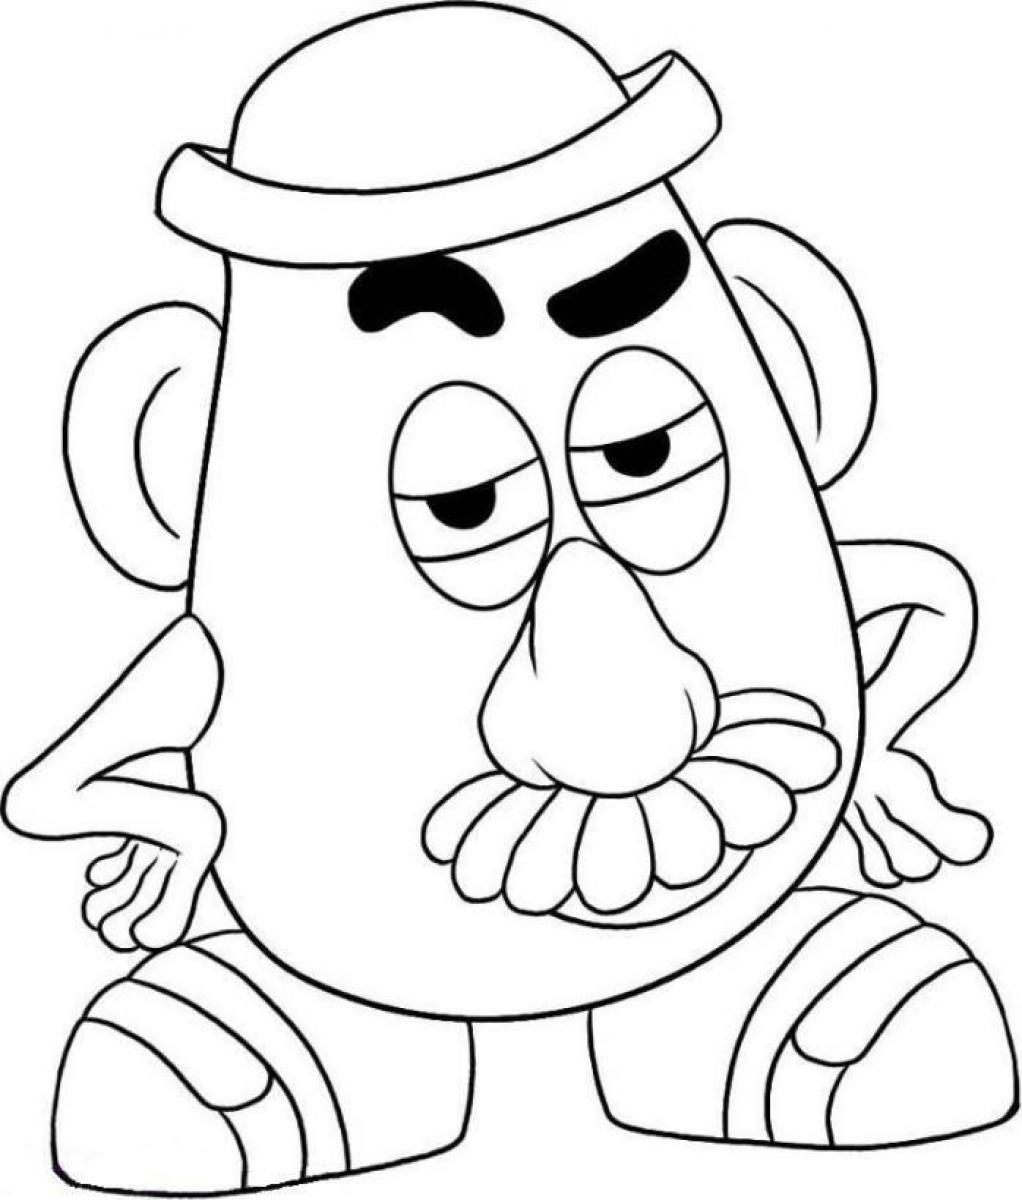 1022x1200 Toy Story Potato Head Coloring Pages